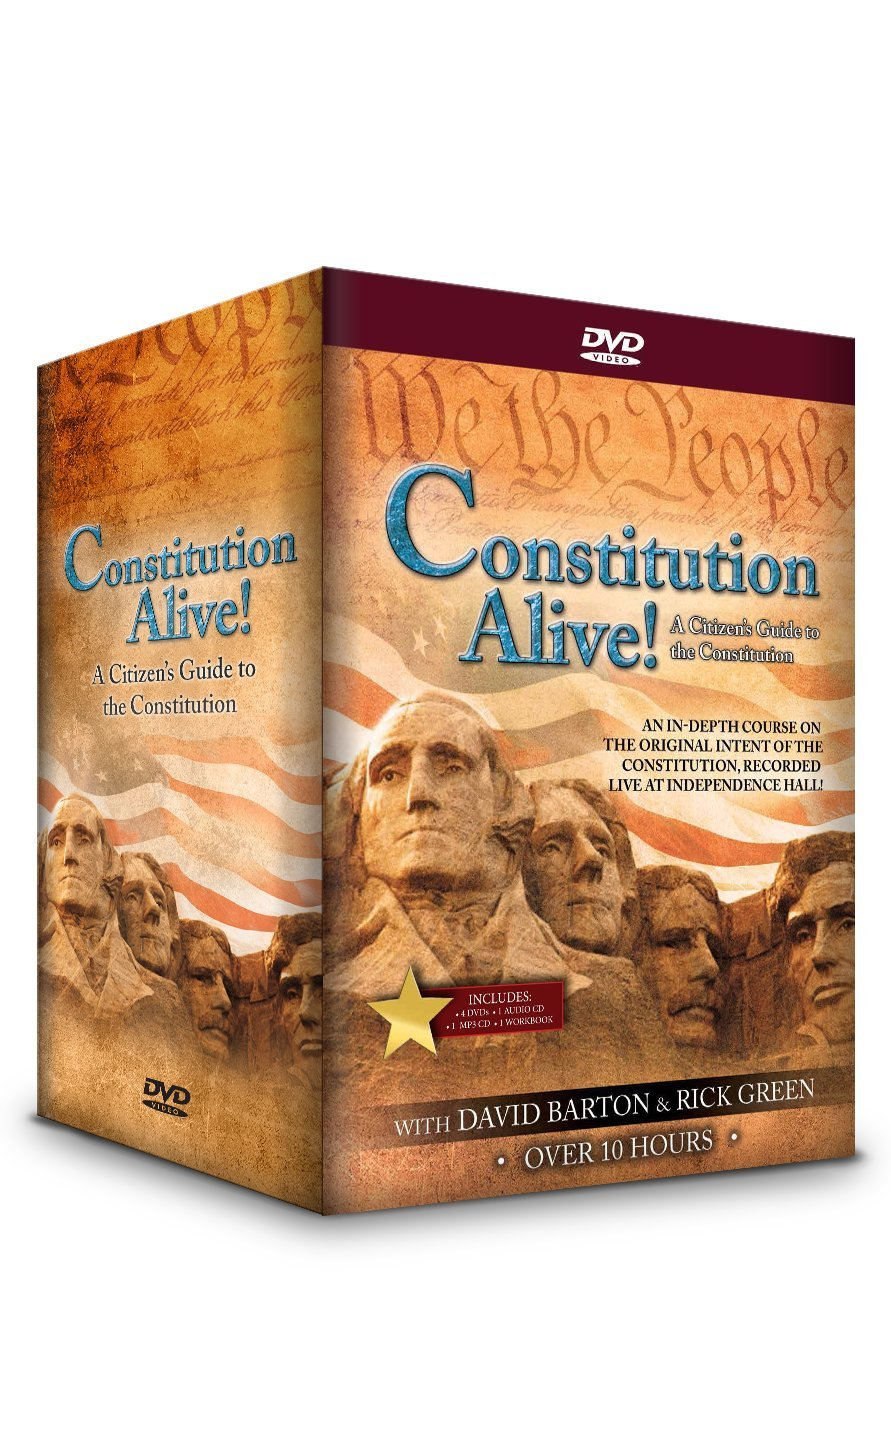 Constitution Alive - David Barton - A Citizen's Guide to the Constitution - one-of-a-kind, 4-DVD set